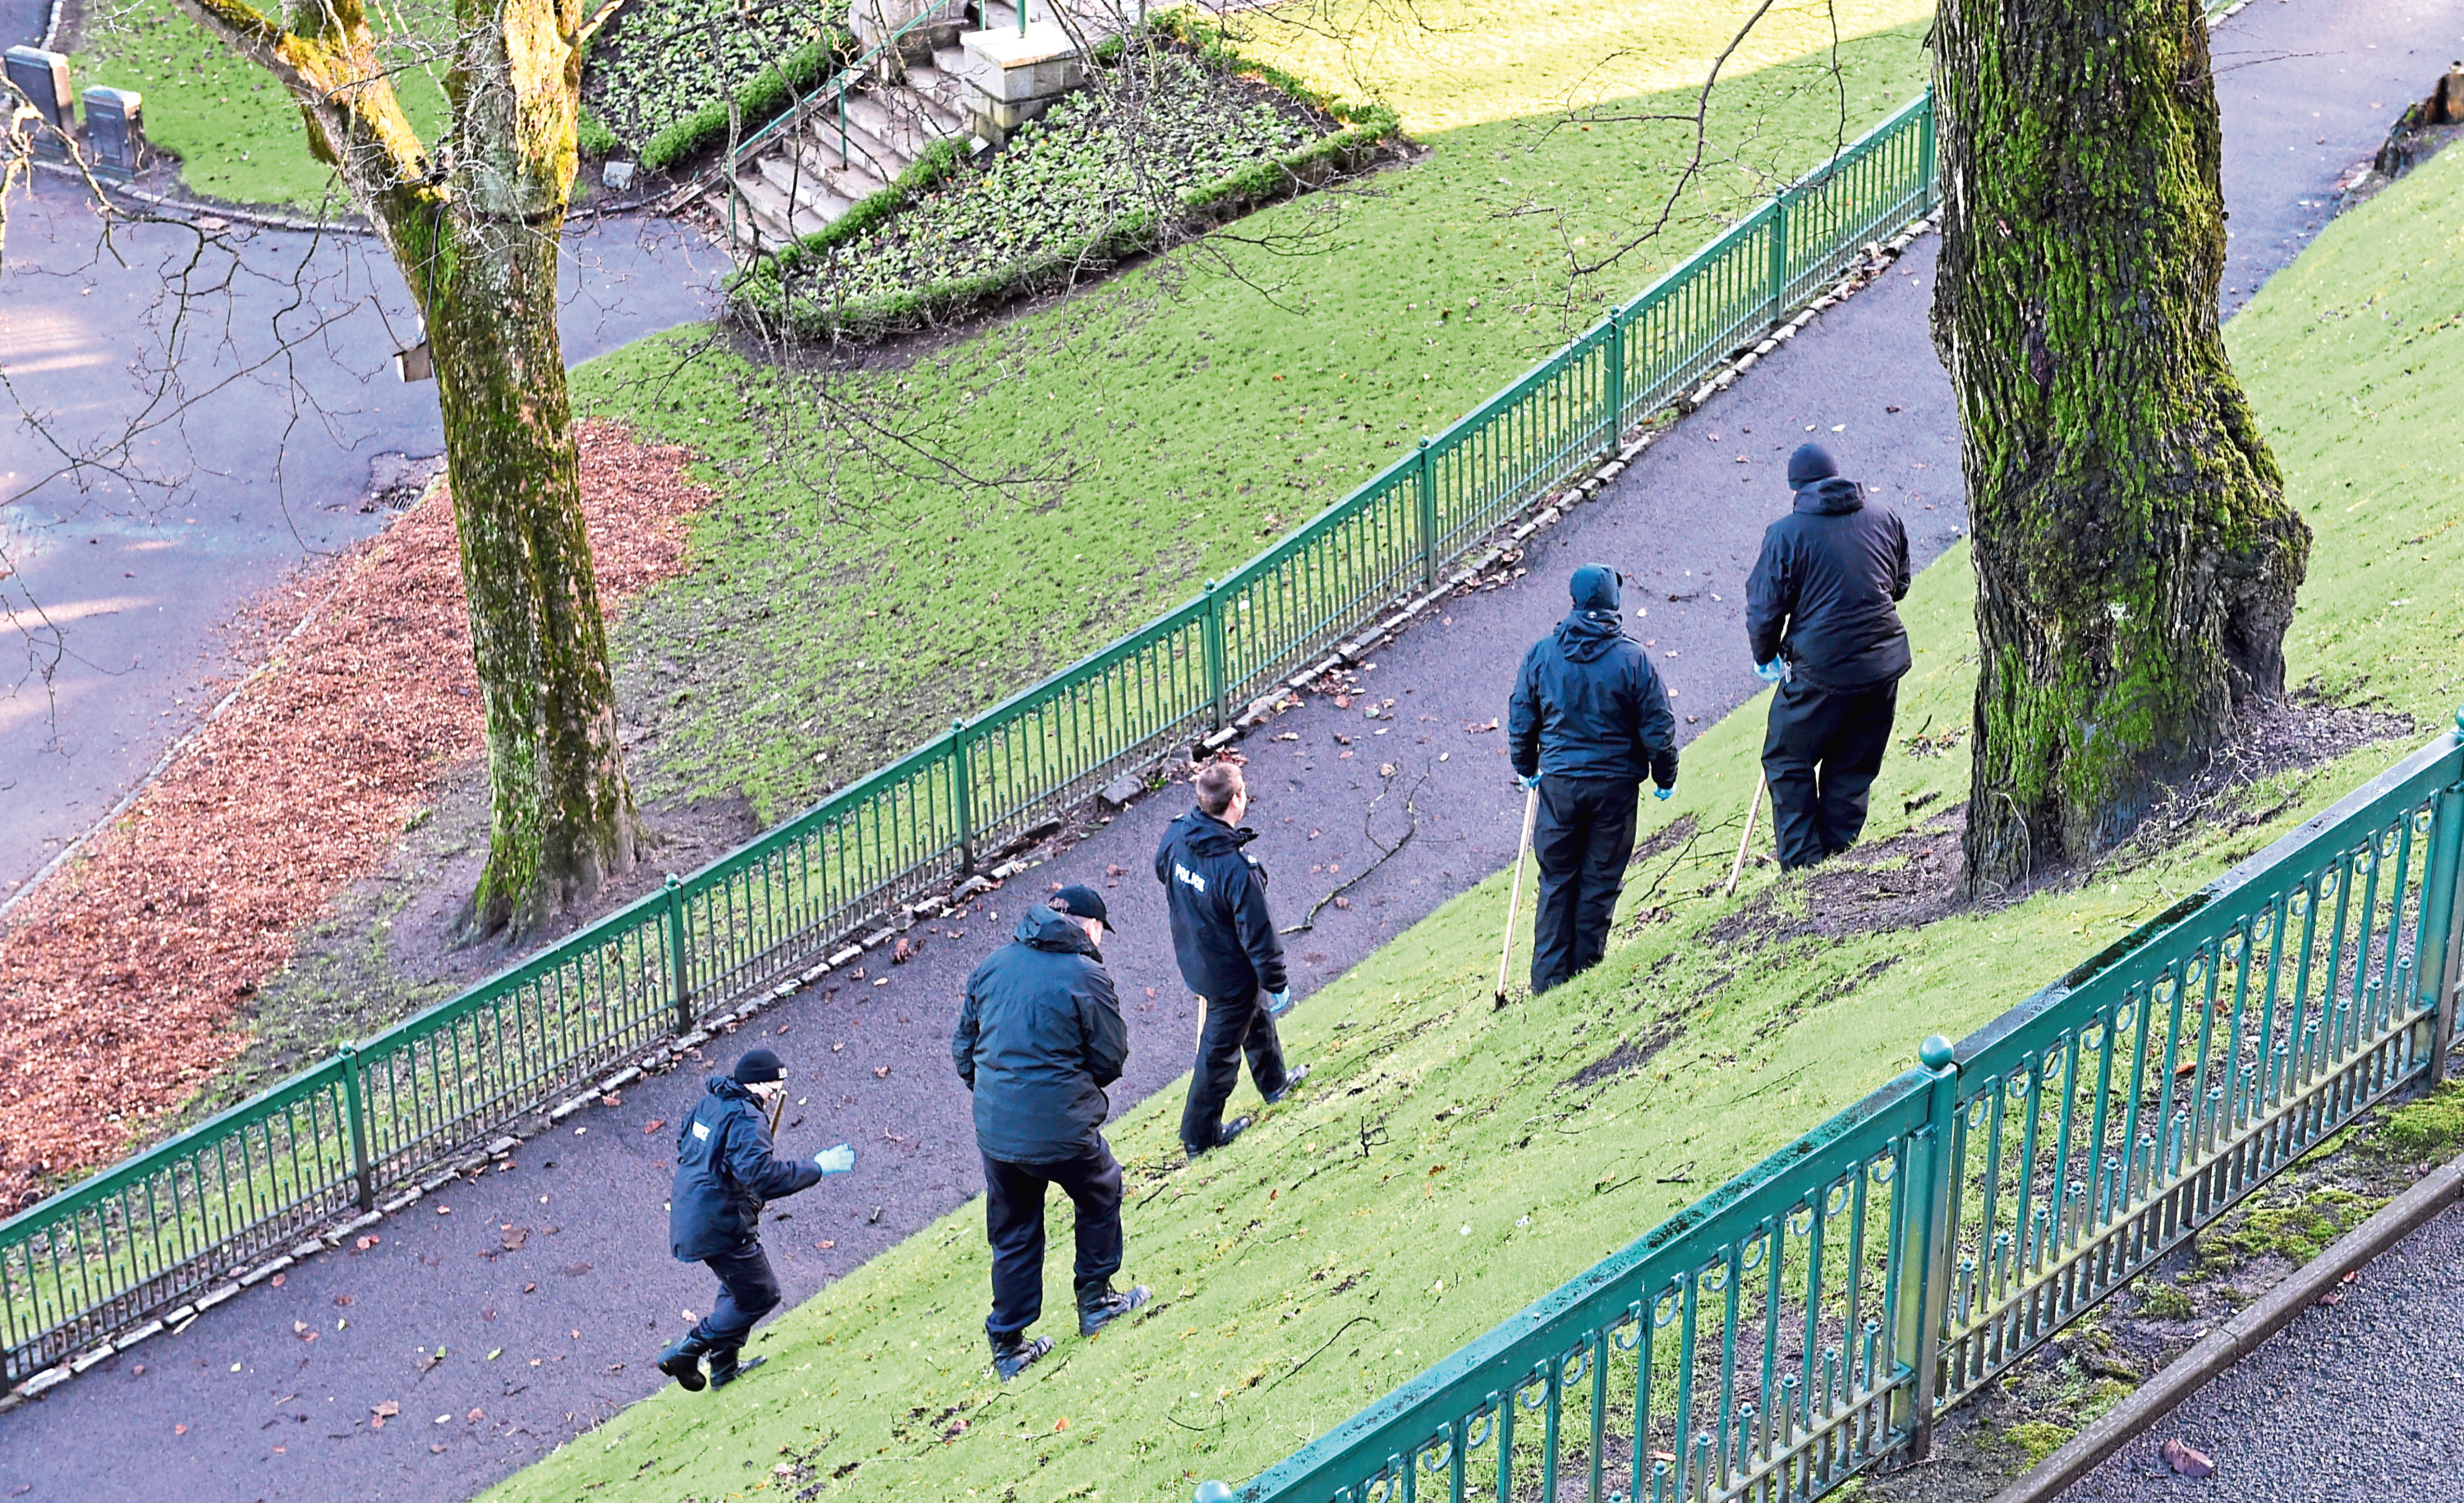 Police investigate the alleged attack in Union Terrace Gardens